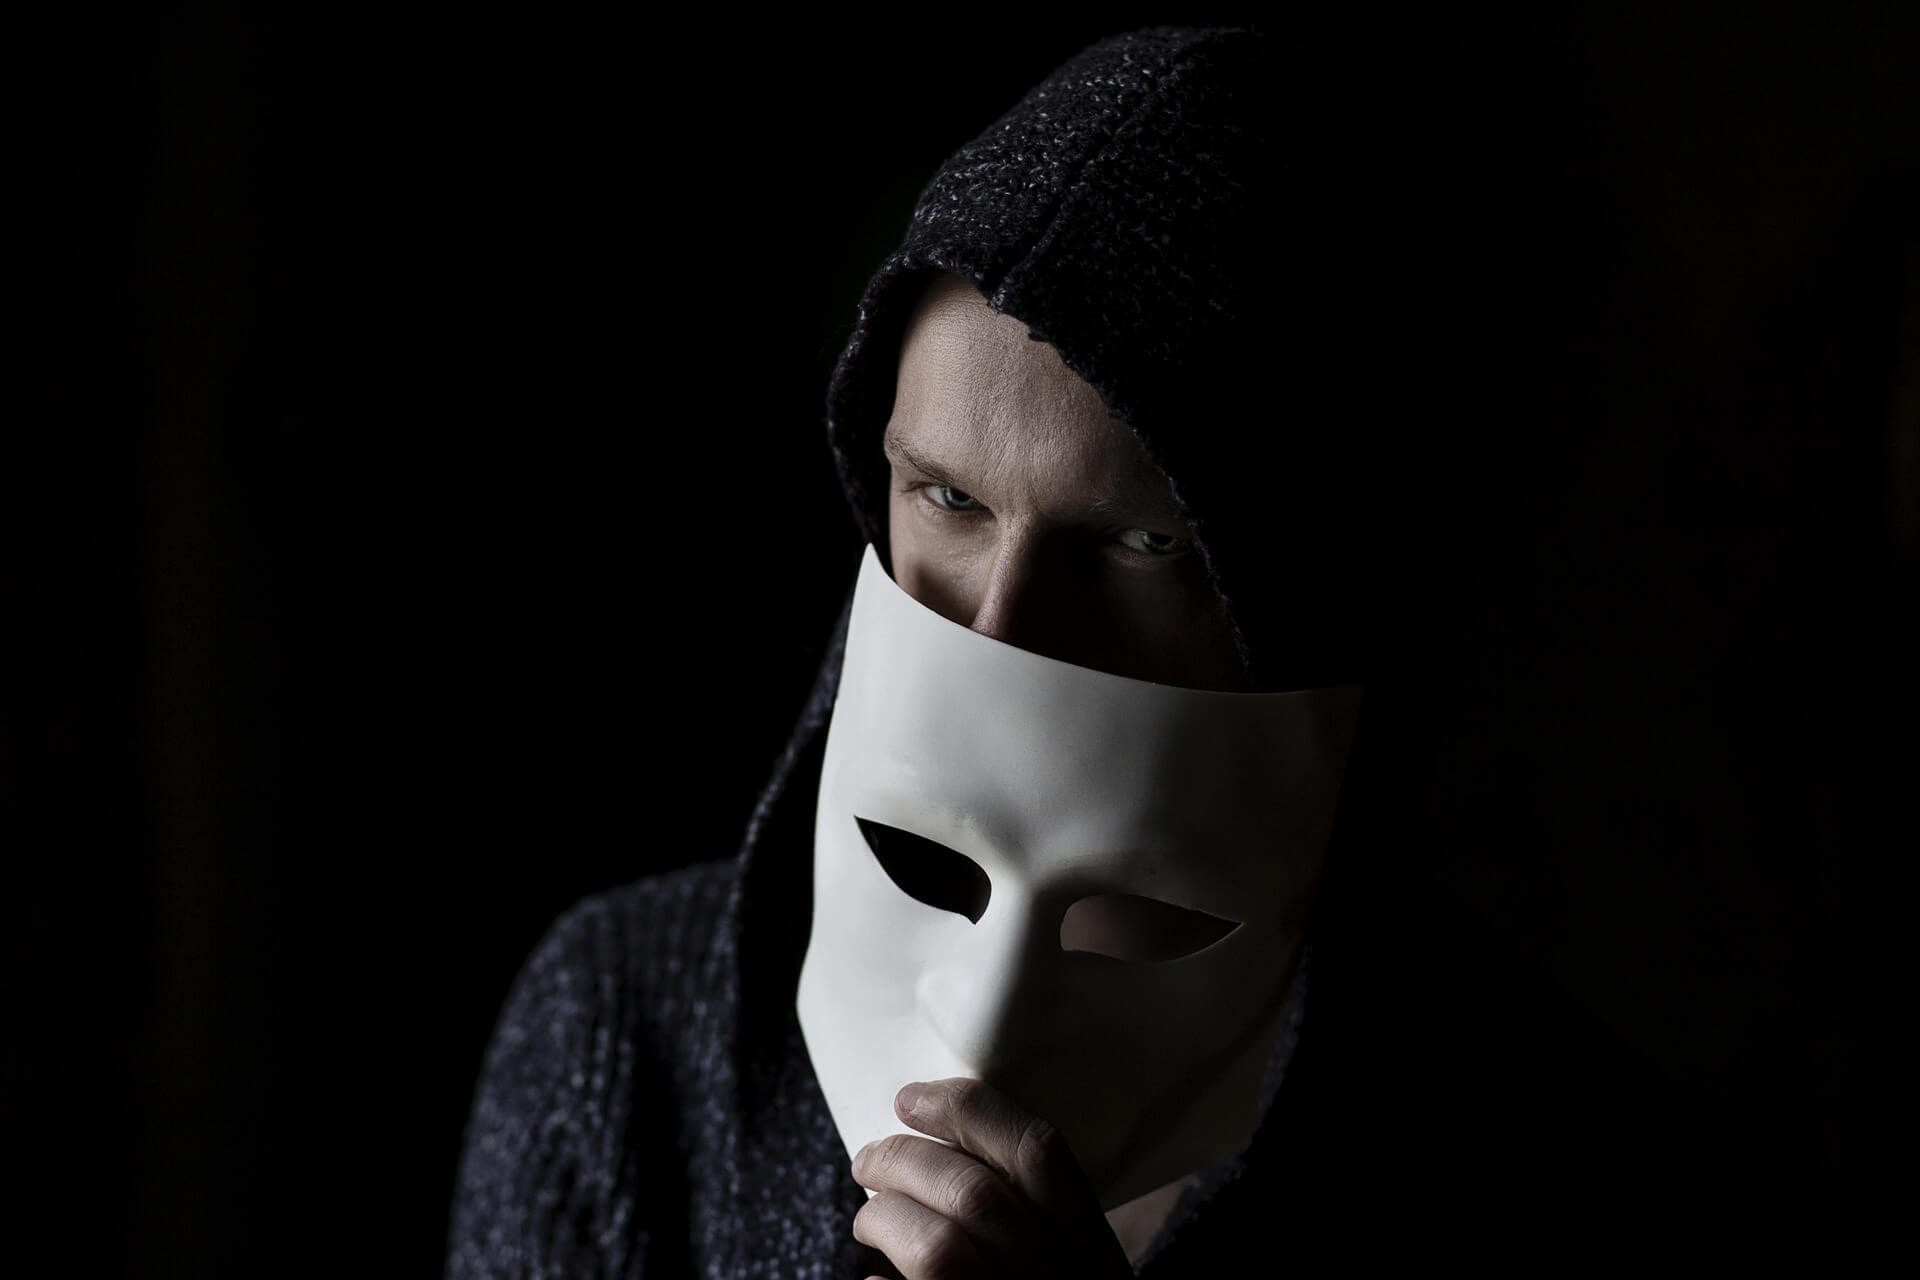 Man peeking out from behind mask